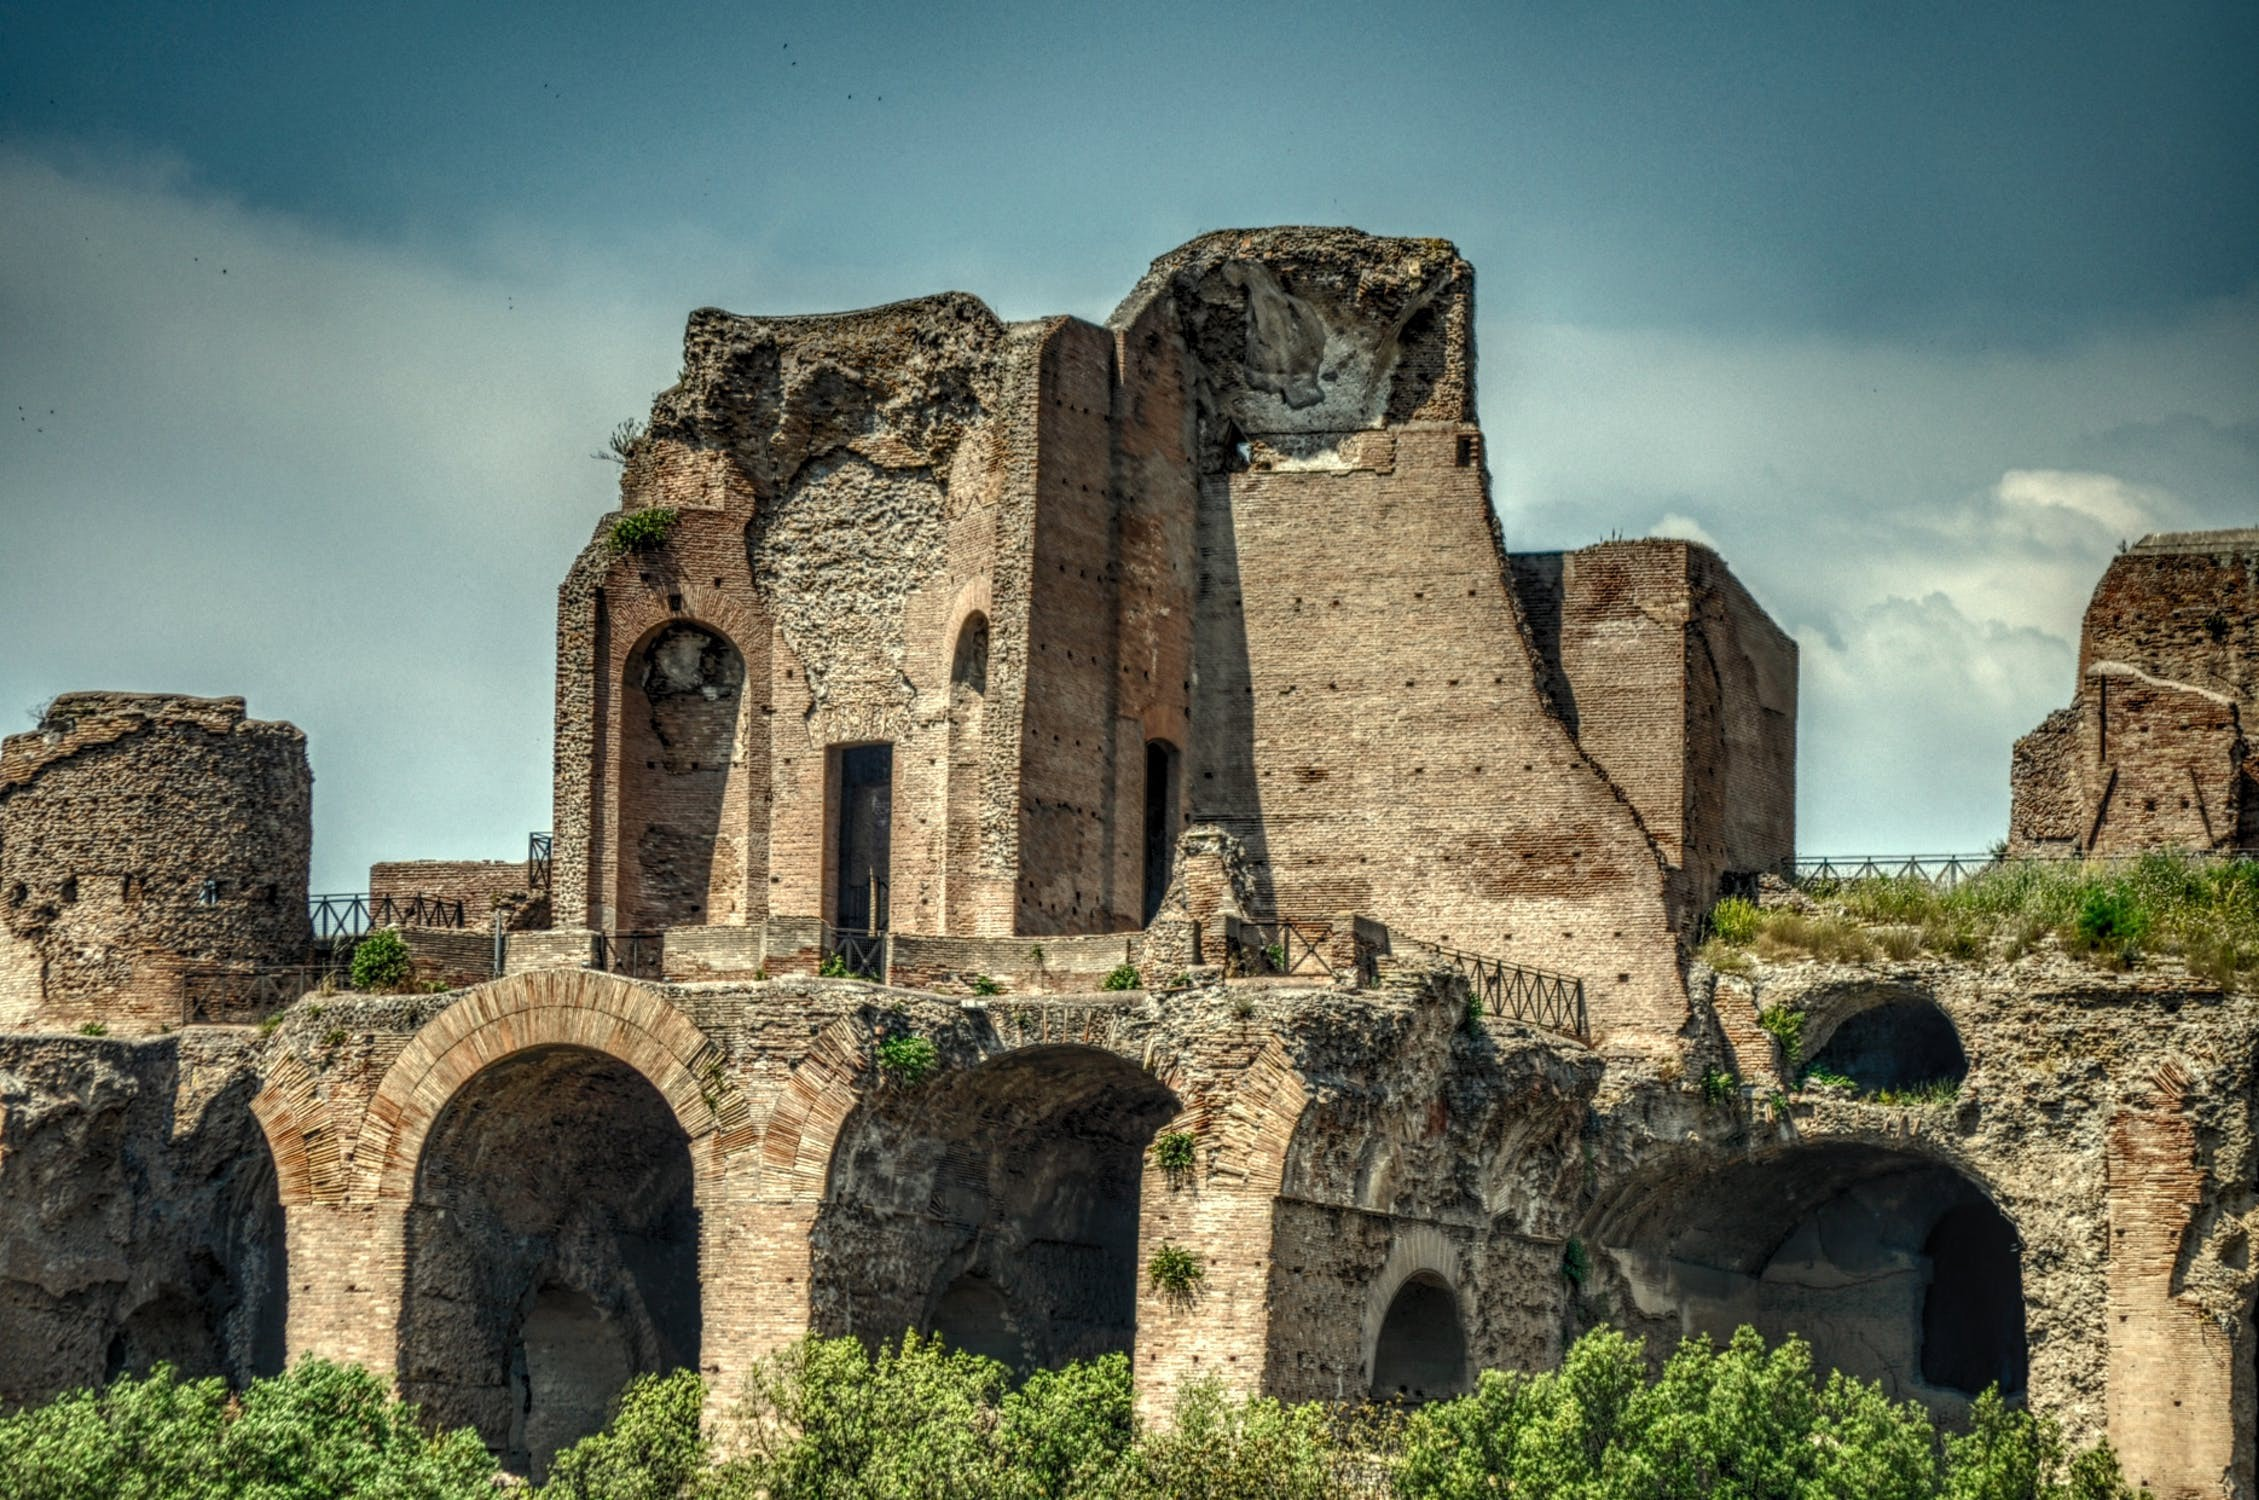 Destroyed ruins in italy